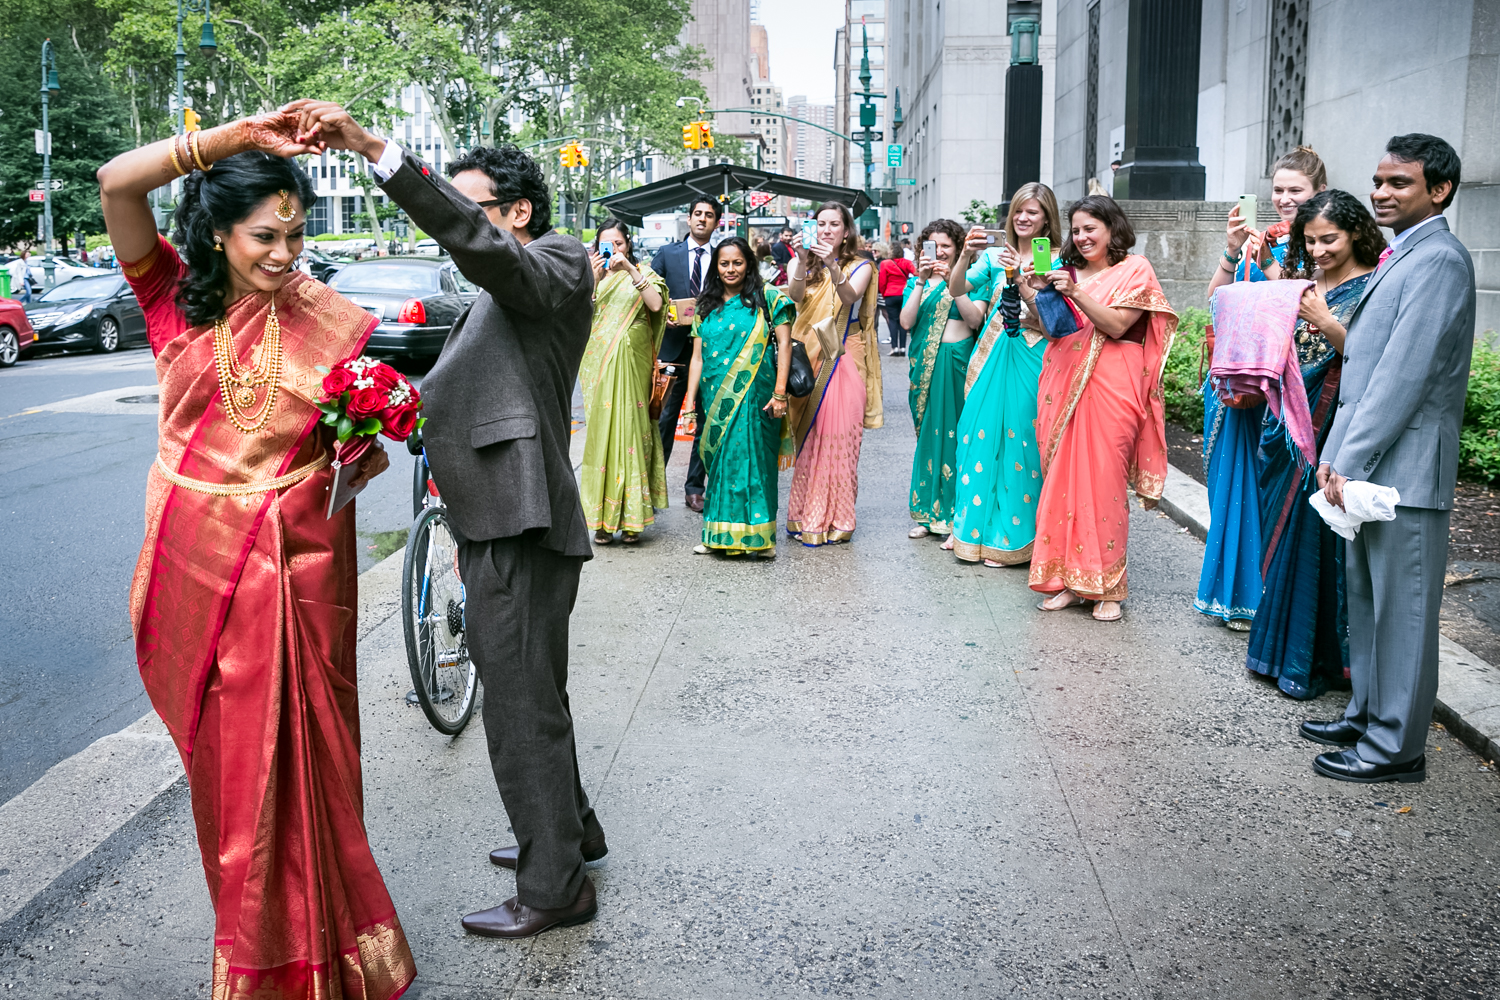 Bride and groom dancing in front of bridal party wearing traditional saris